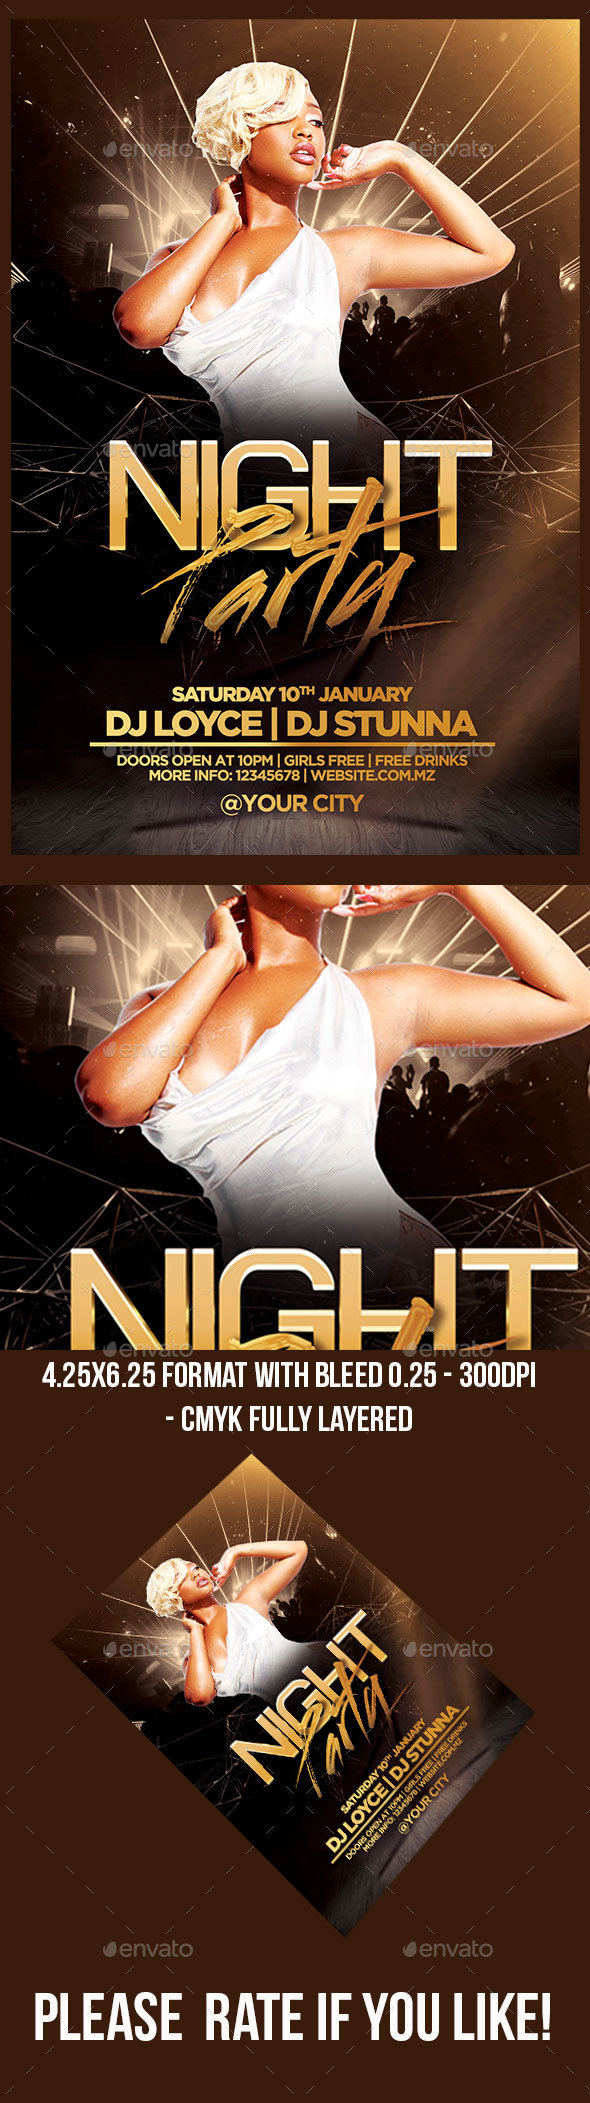 Night Party Flyer Template - Print Templates